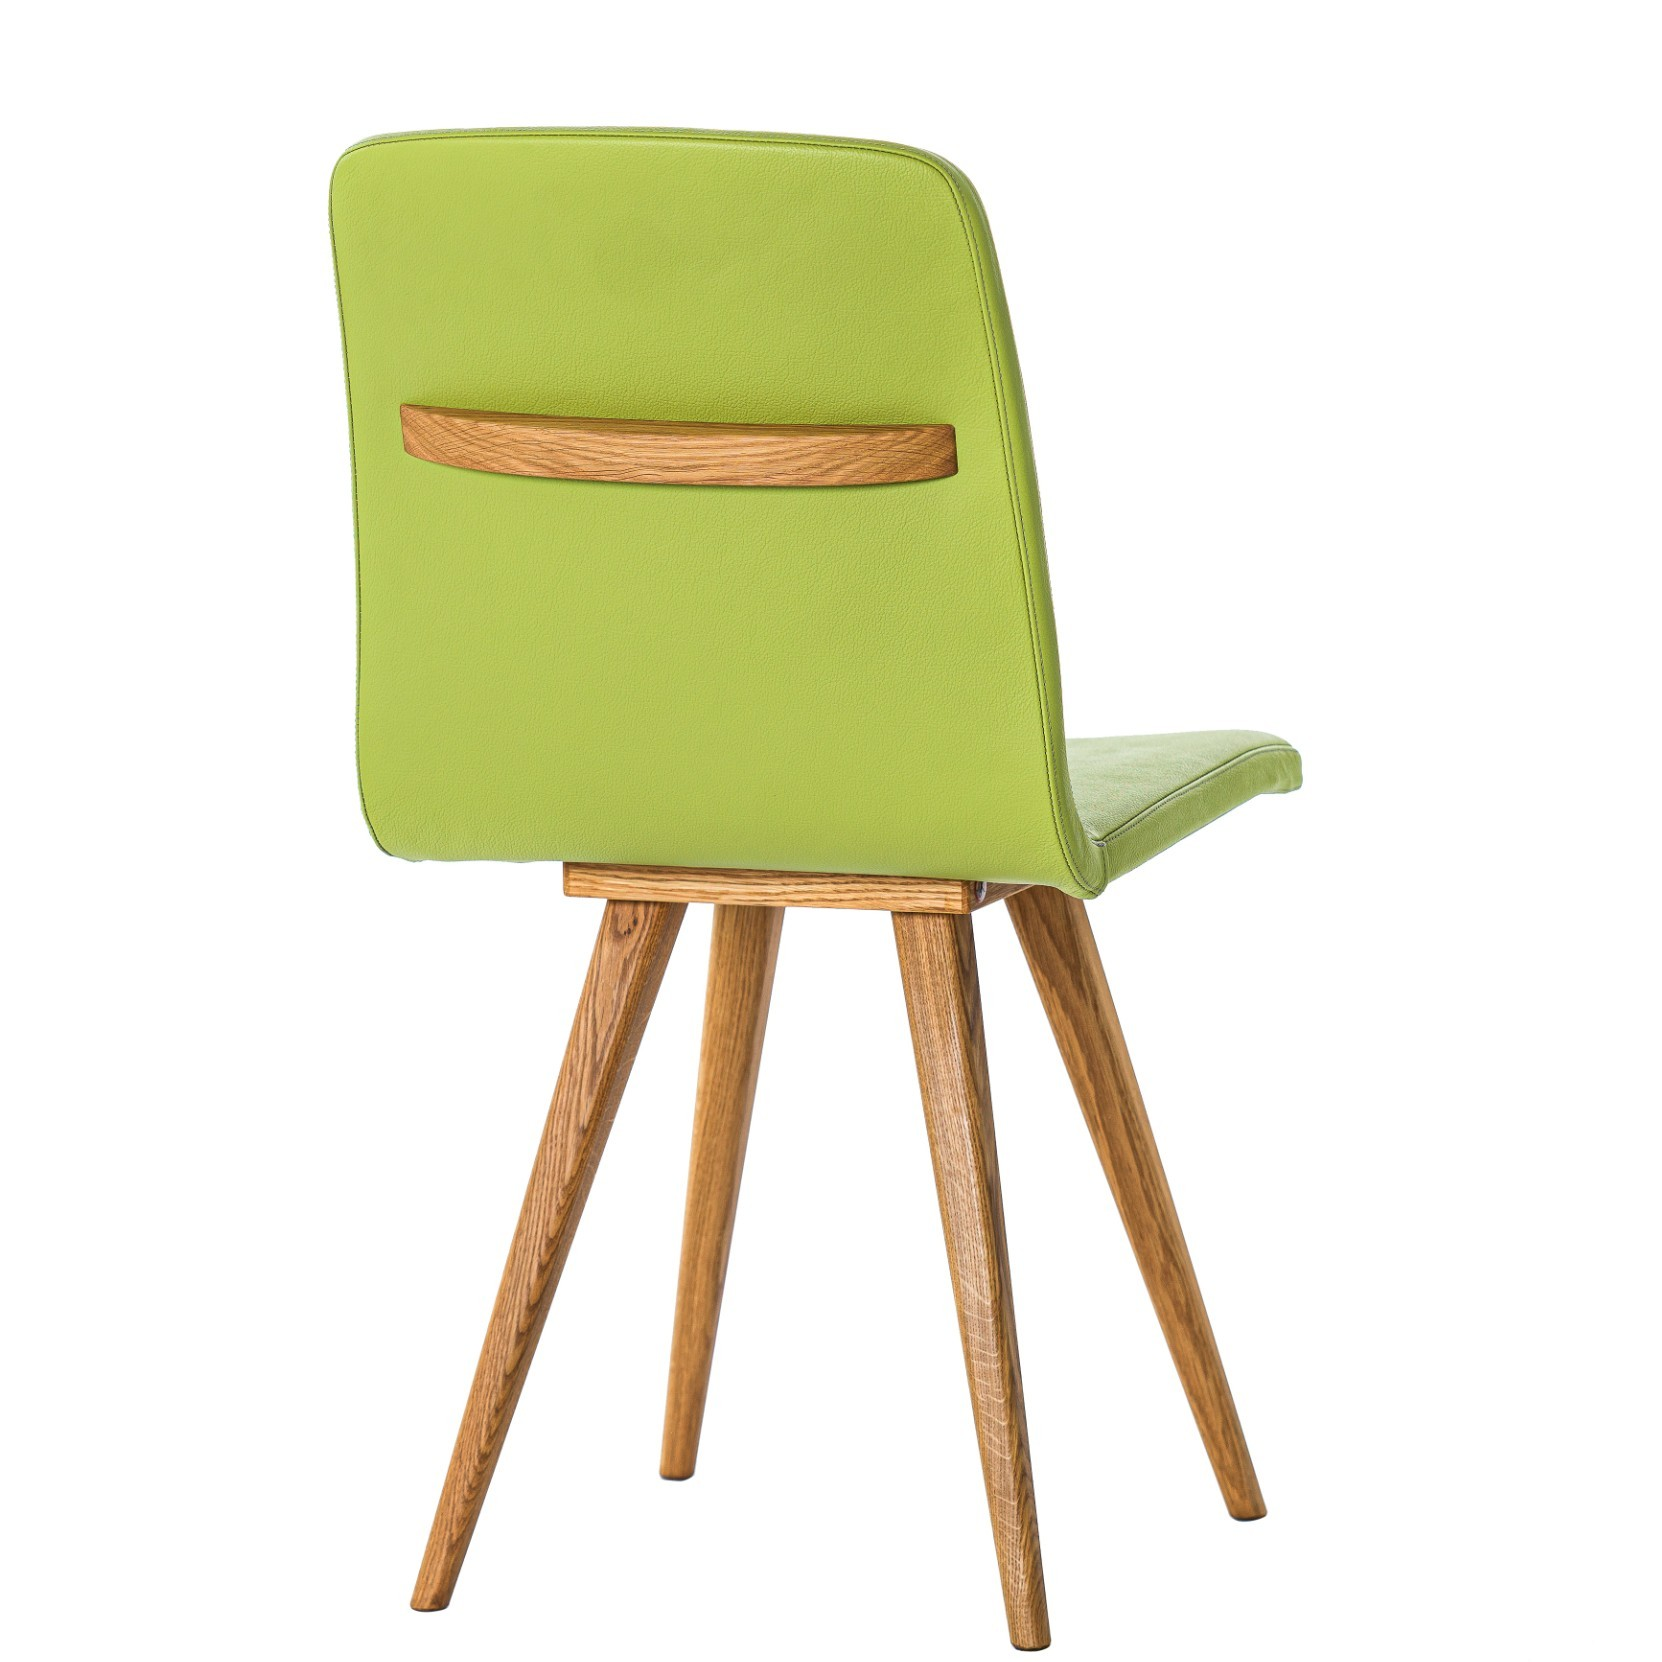 GATTA CHAIR wholly upholstered with handle